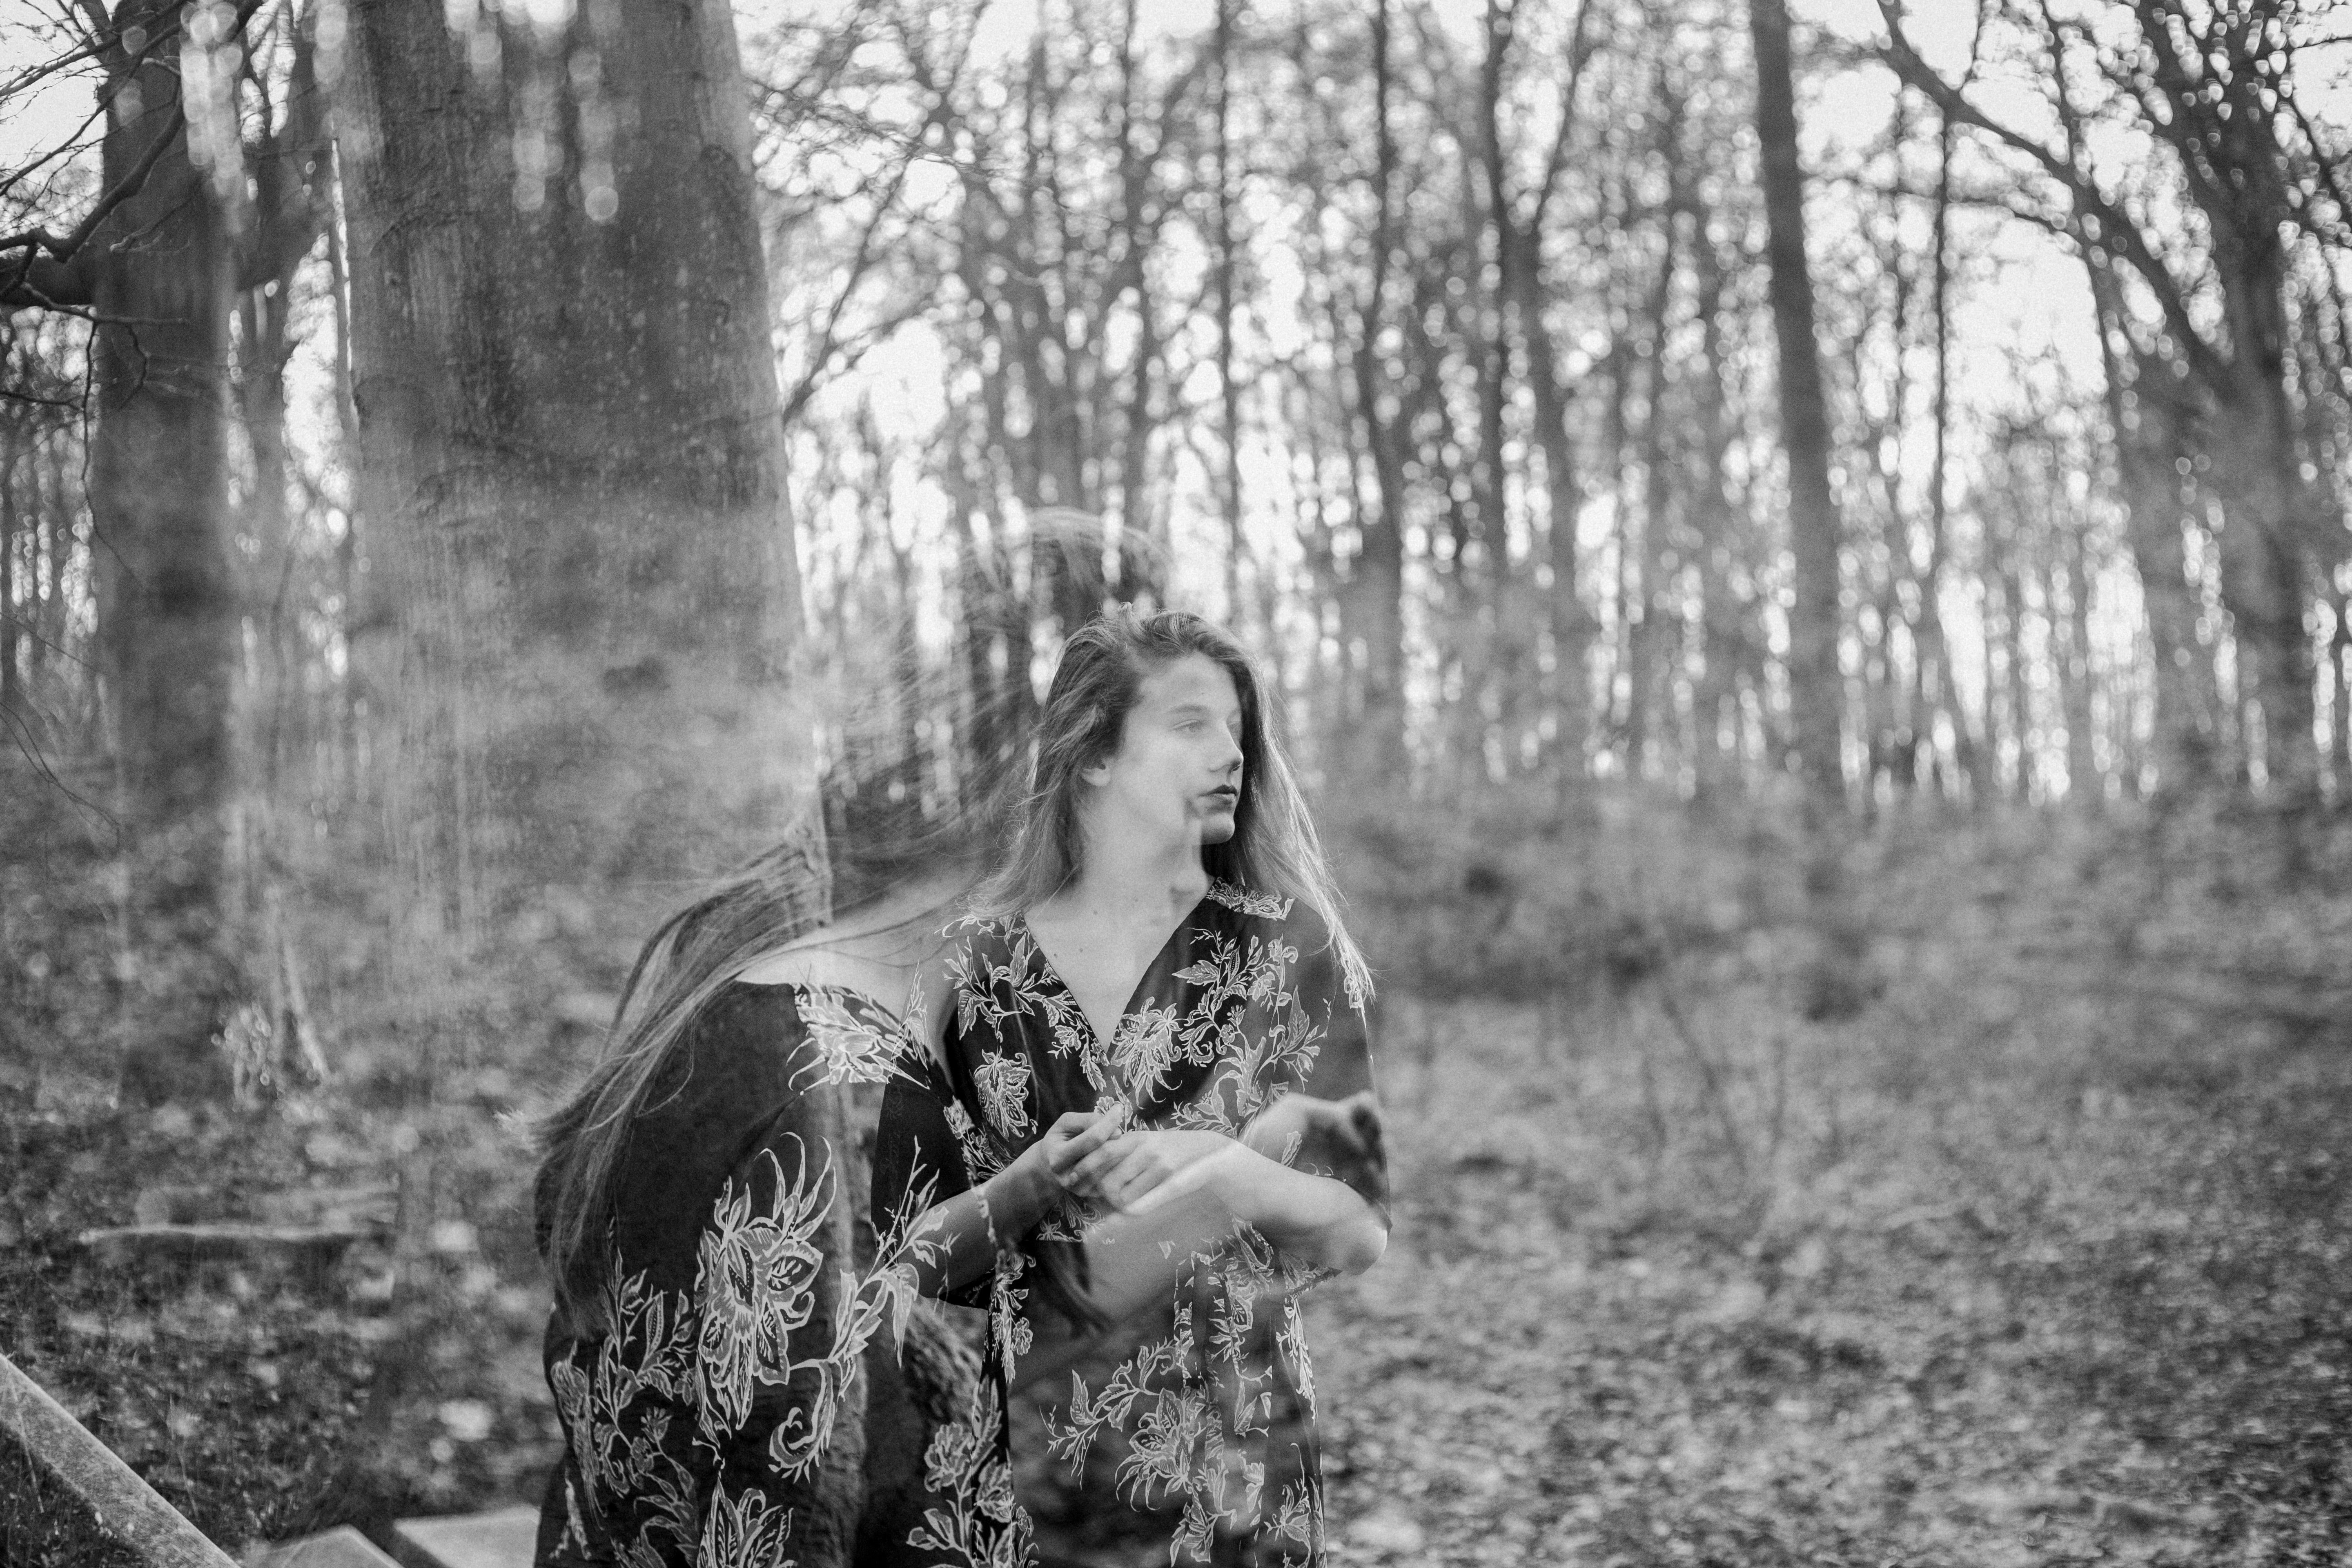 A black-and-white double exposure shot of a young woman in a forest